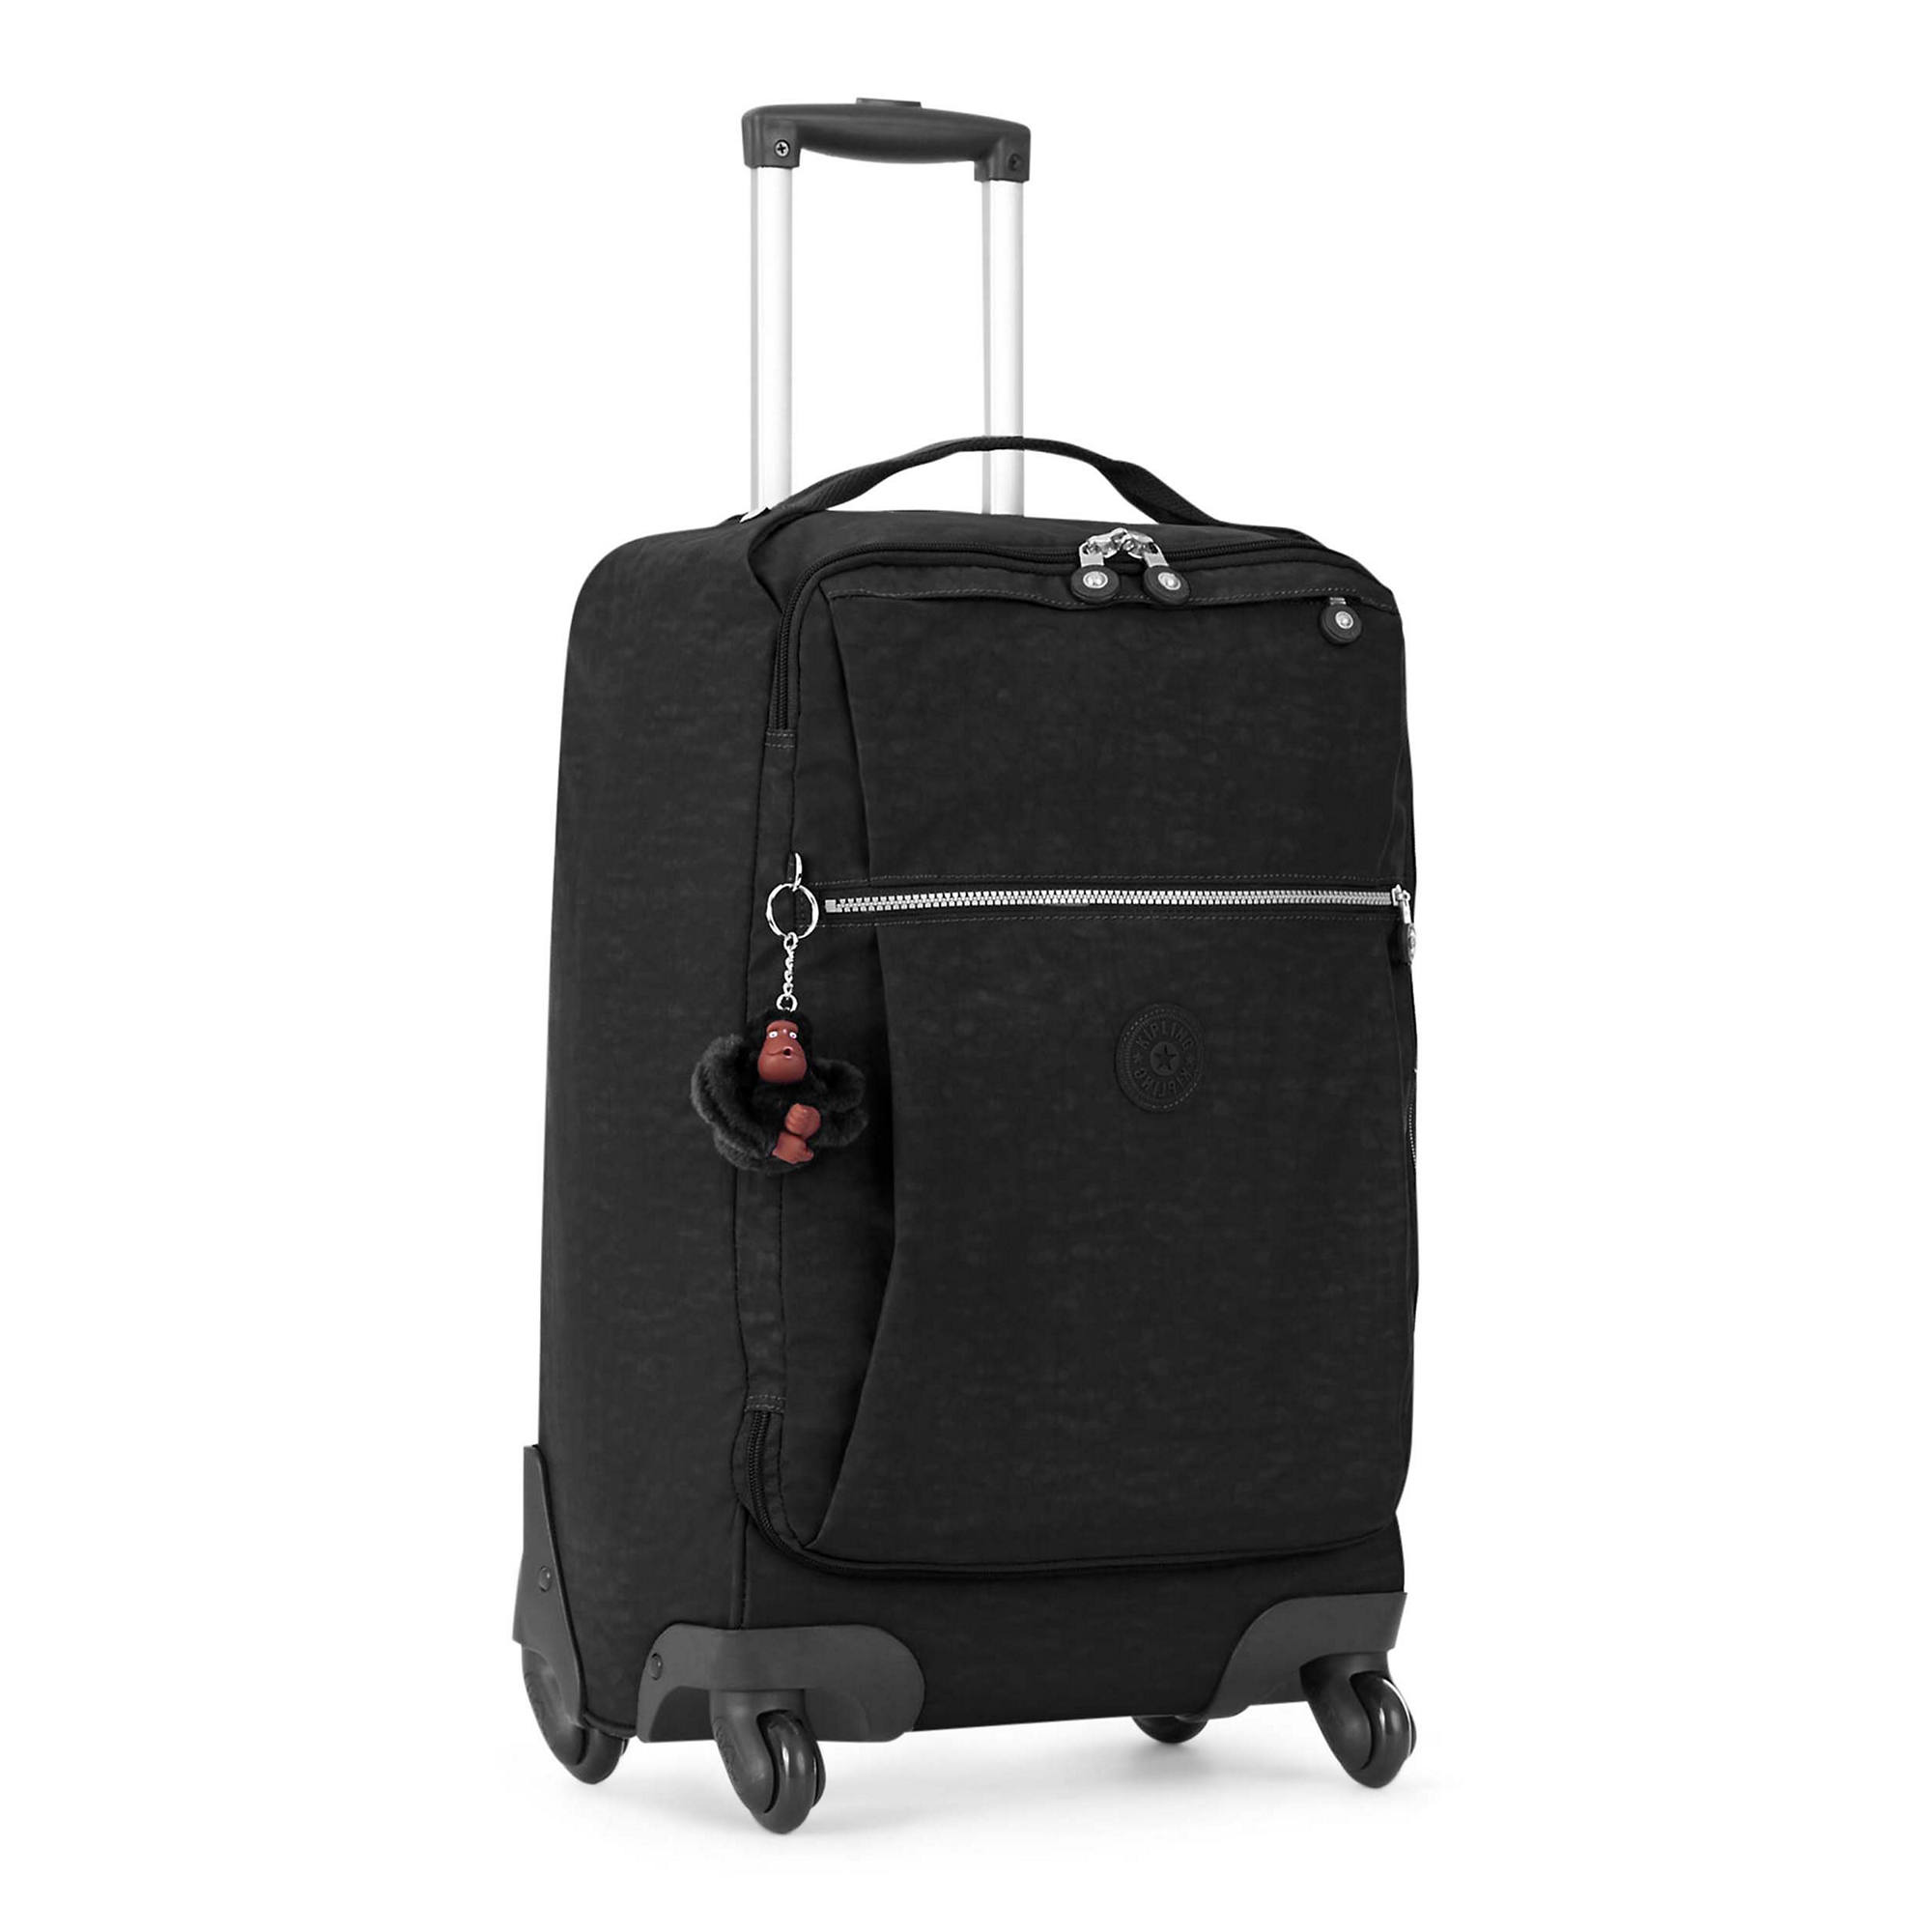 1a7882dc17 Kipling Darcey Small Carry-on Rolling Luggage Metallic Pewter 44271087.  About this product. Picture 1 of 6  Picture 2 of 6 ...